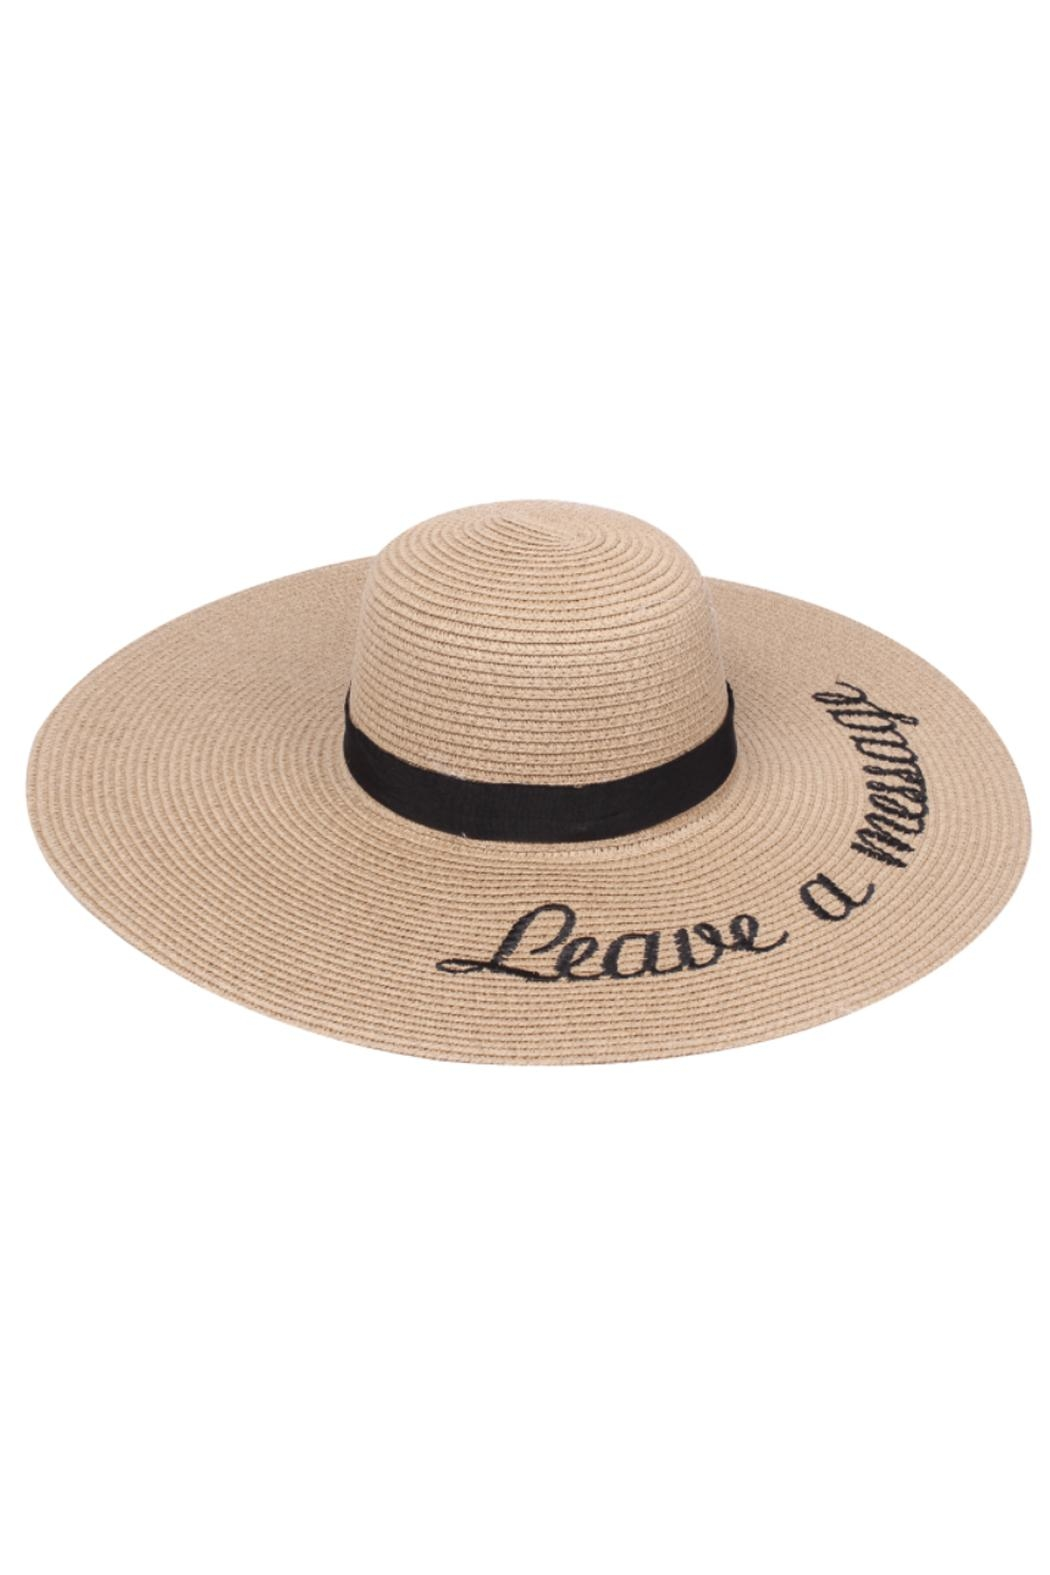 JChronicles Beach Floppy Hats - Front Cropped Image